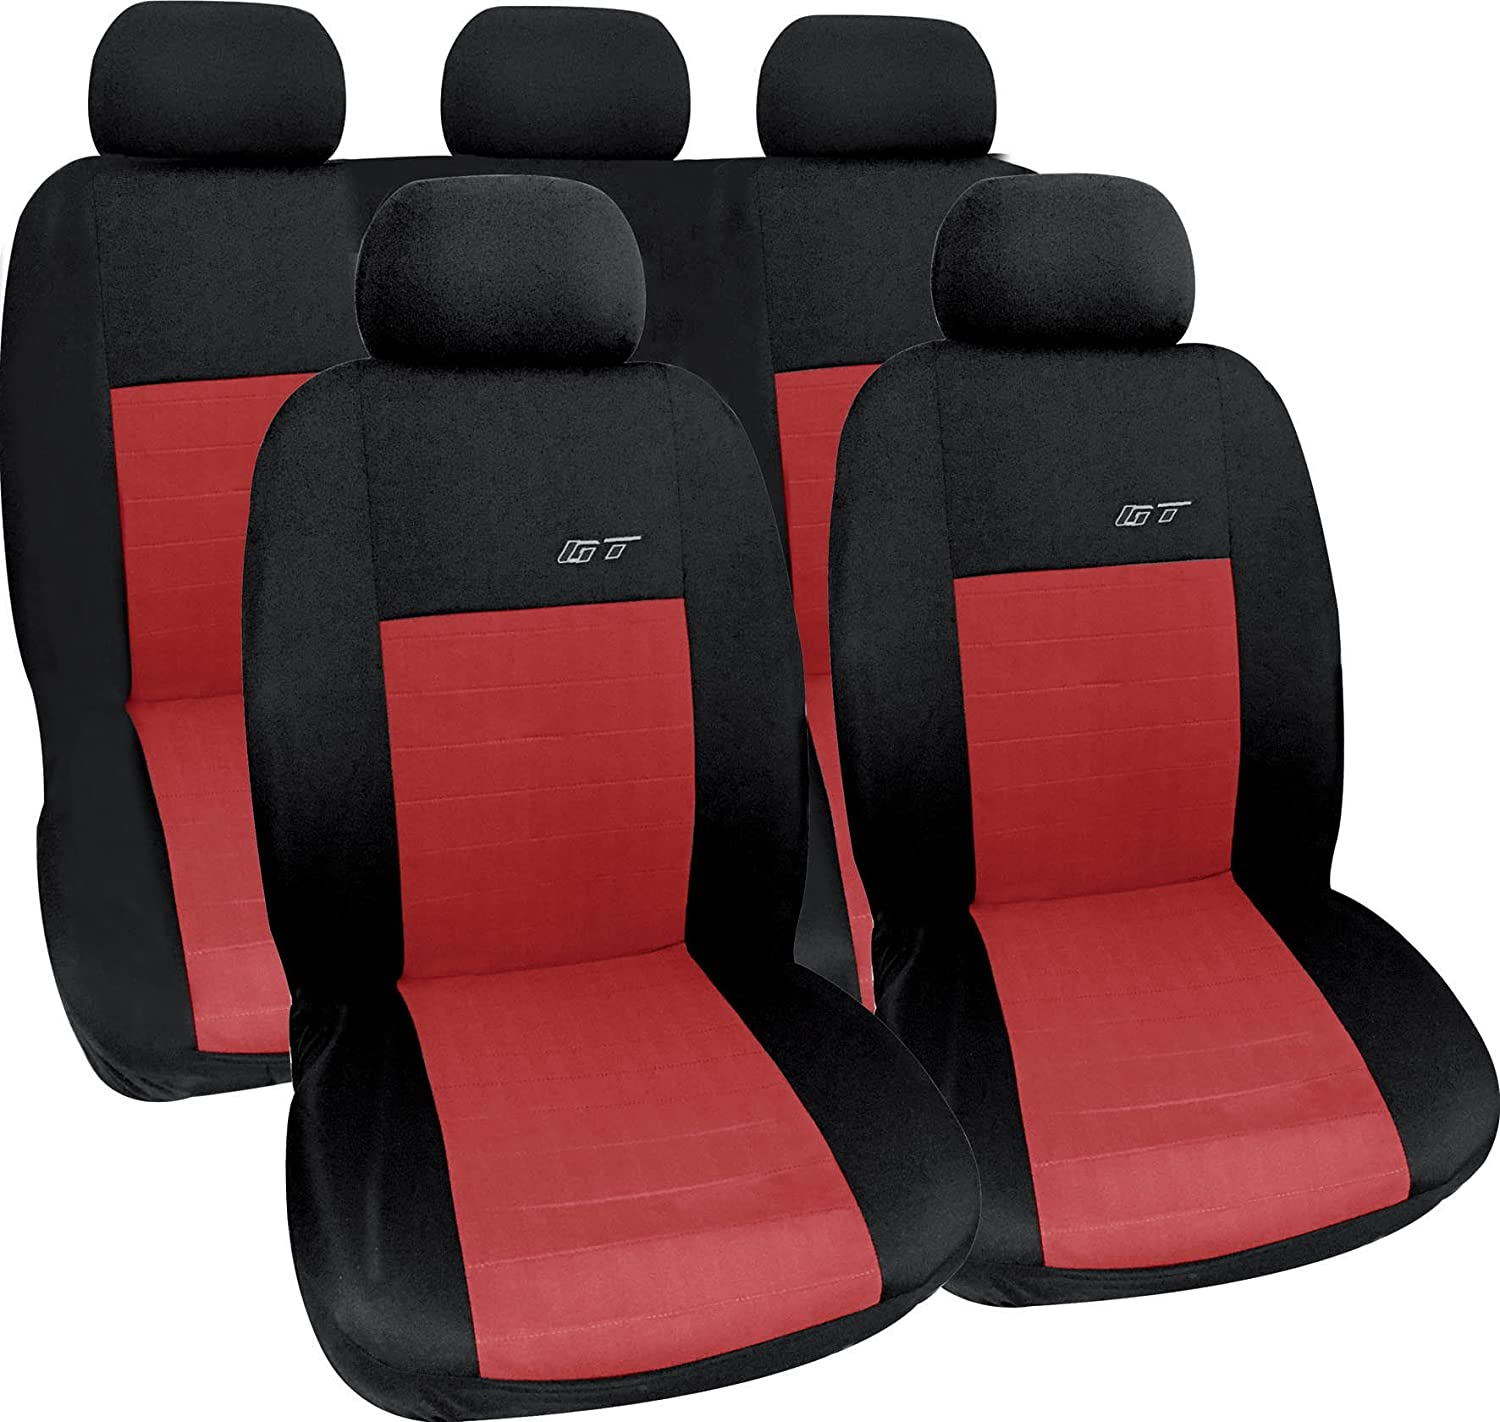 black Car seat covers Vauxhall Insignia full set leatherette red